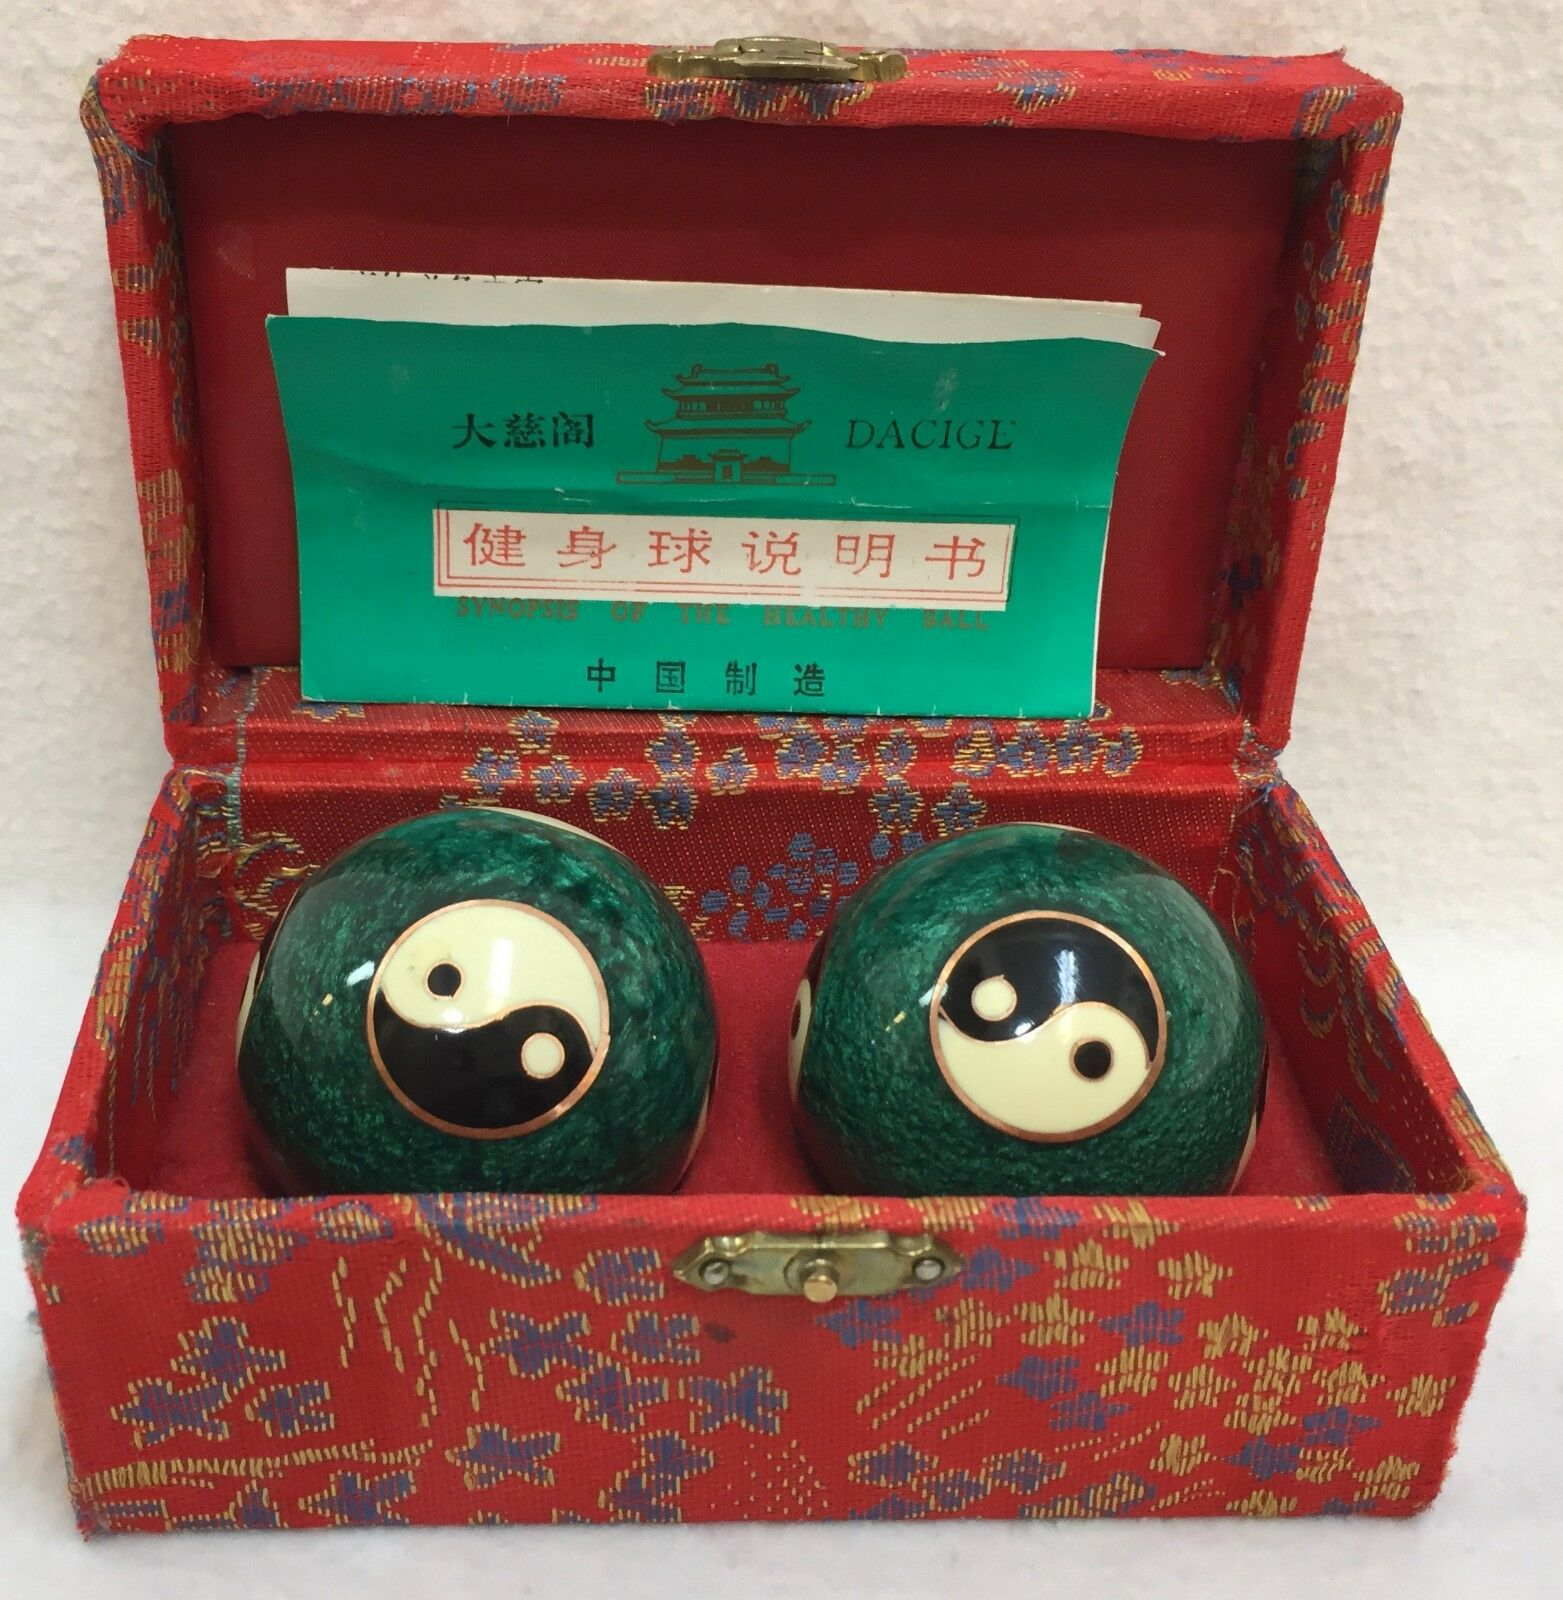 Chinese Iron Balls Stress Relaxation Health Exercise Green Yin Yang Dacige